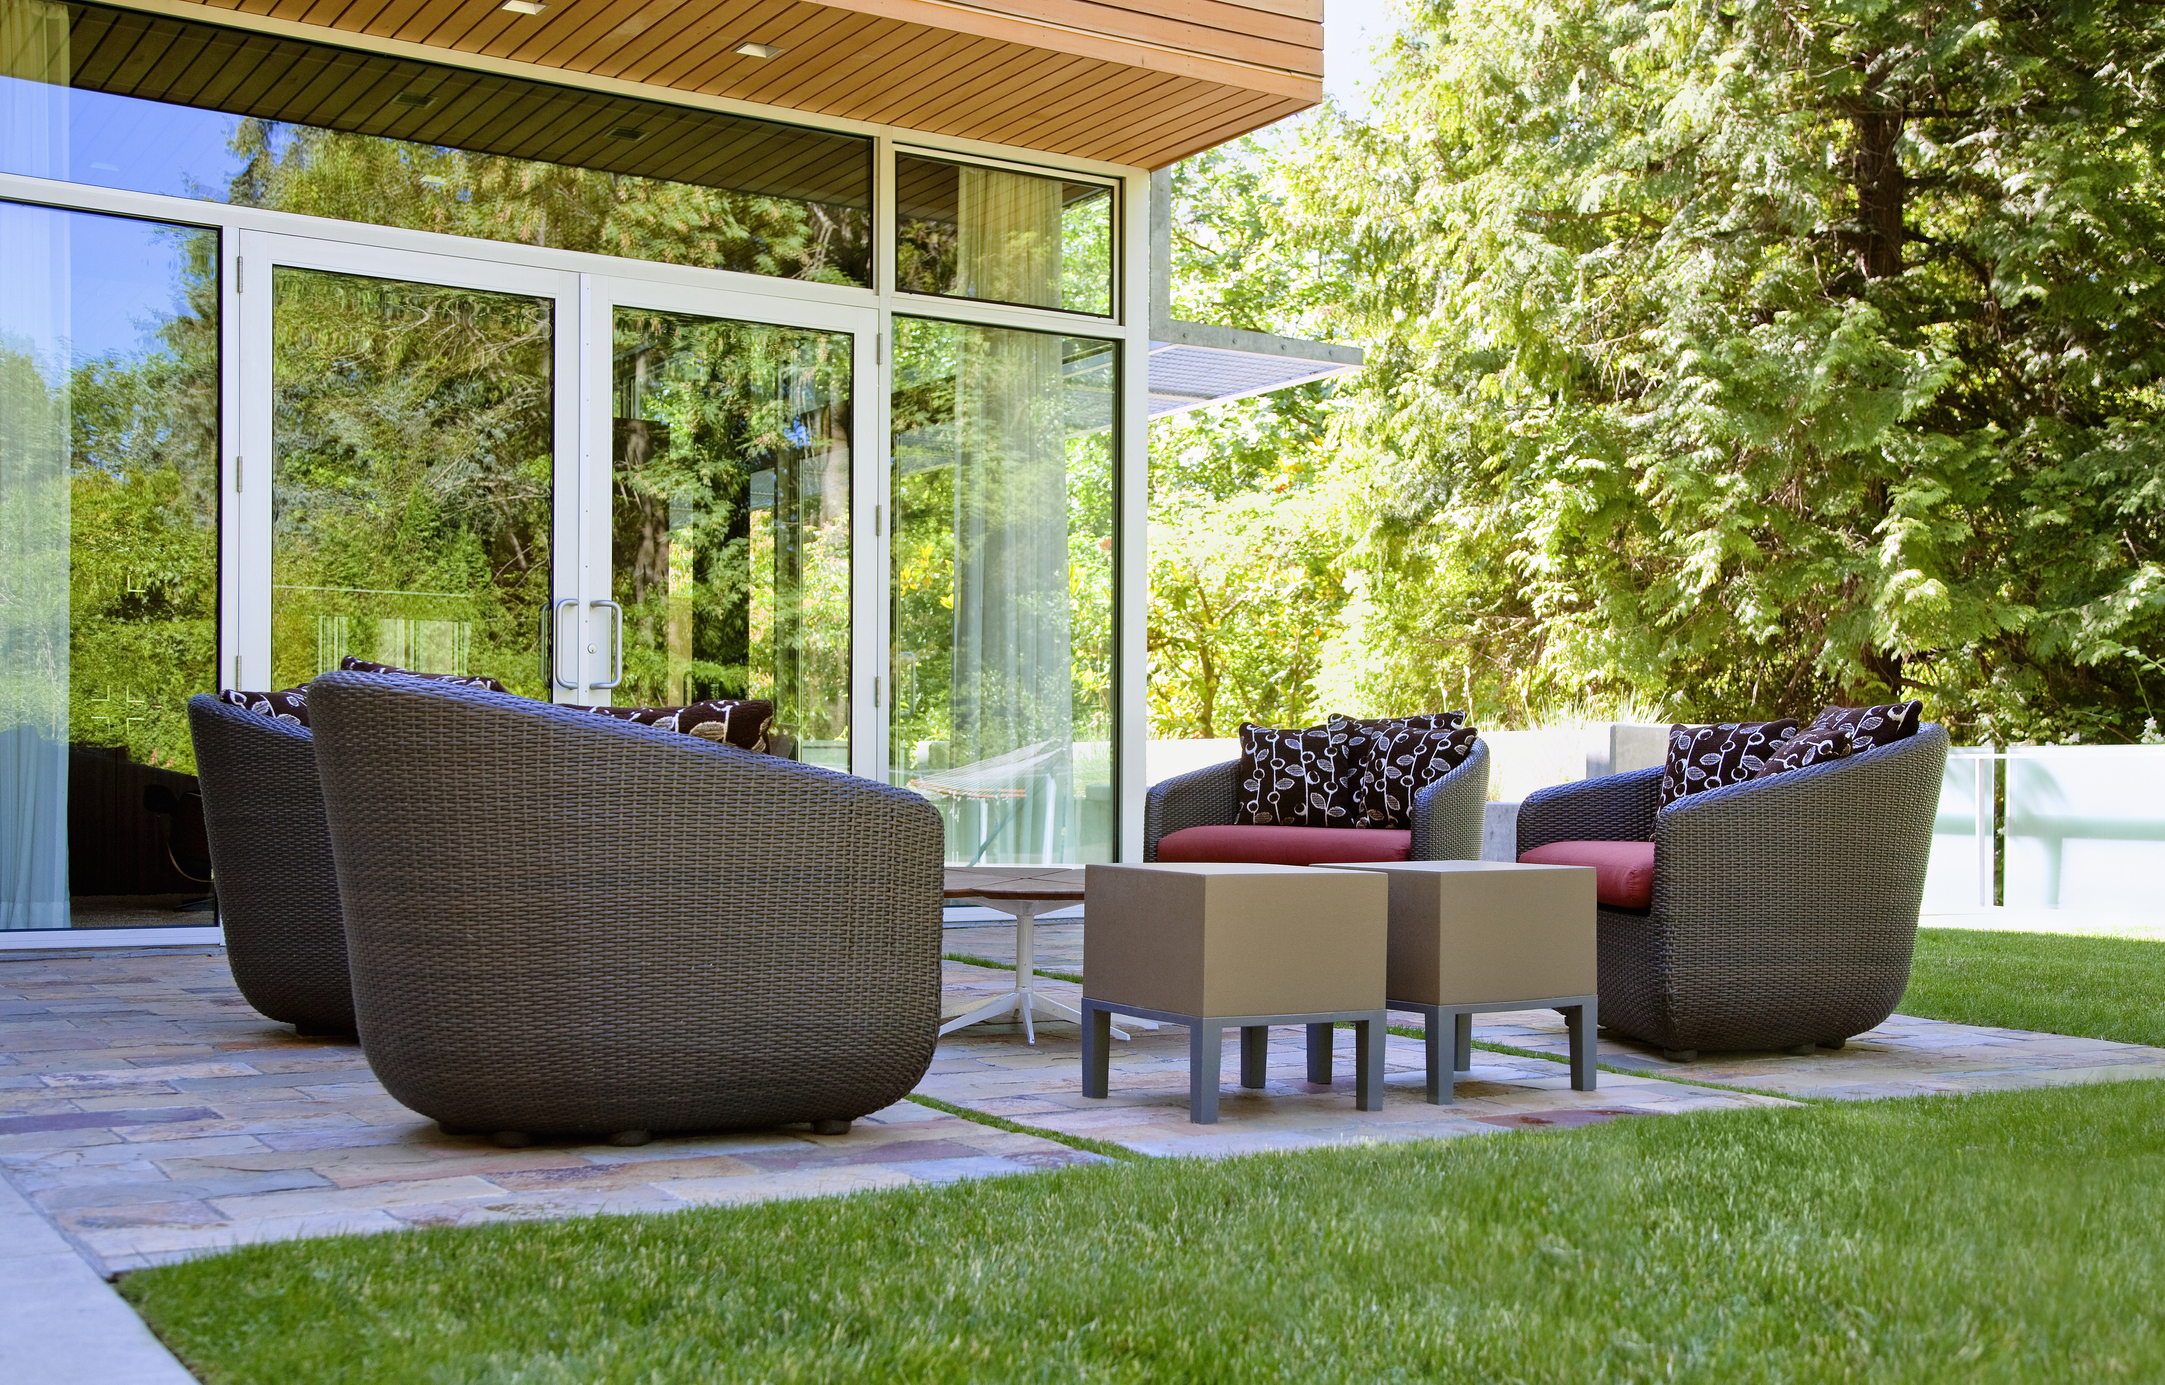 Memorial Day Furniture Sales Great Deals On Patio Sets Home Furniture At Home Depot Wayfair And More T3